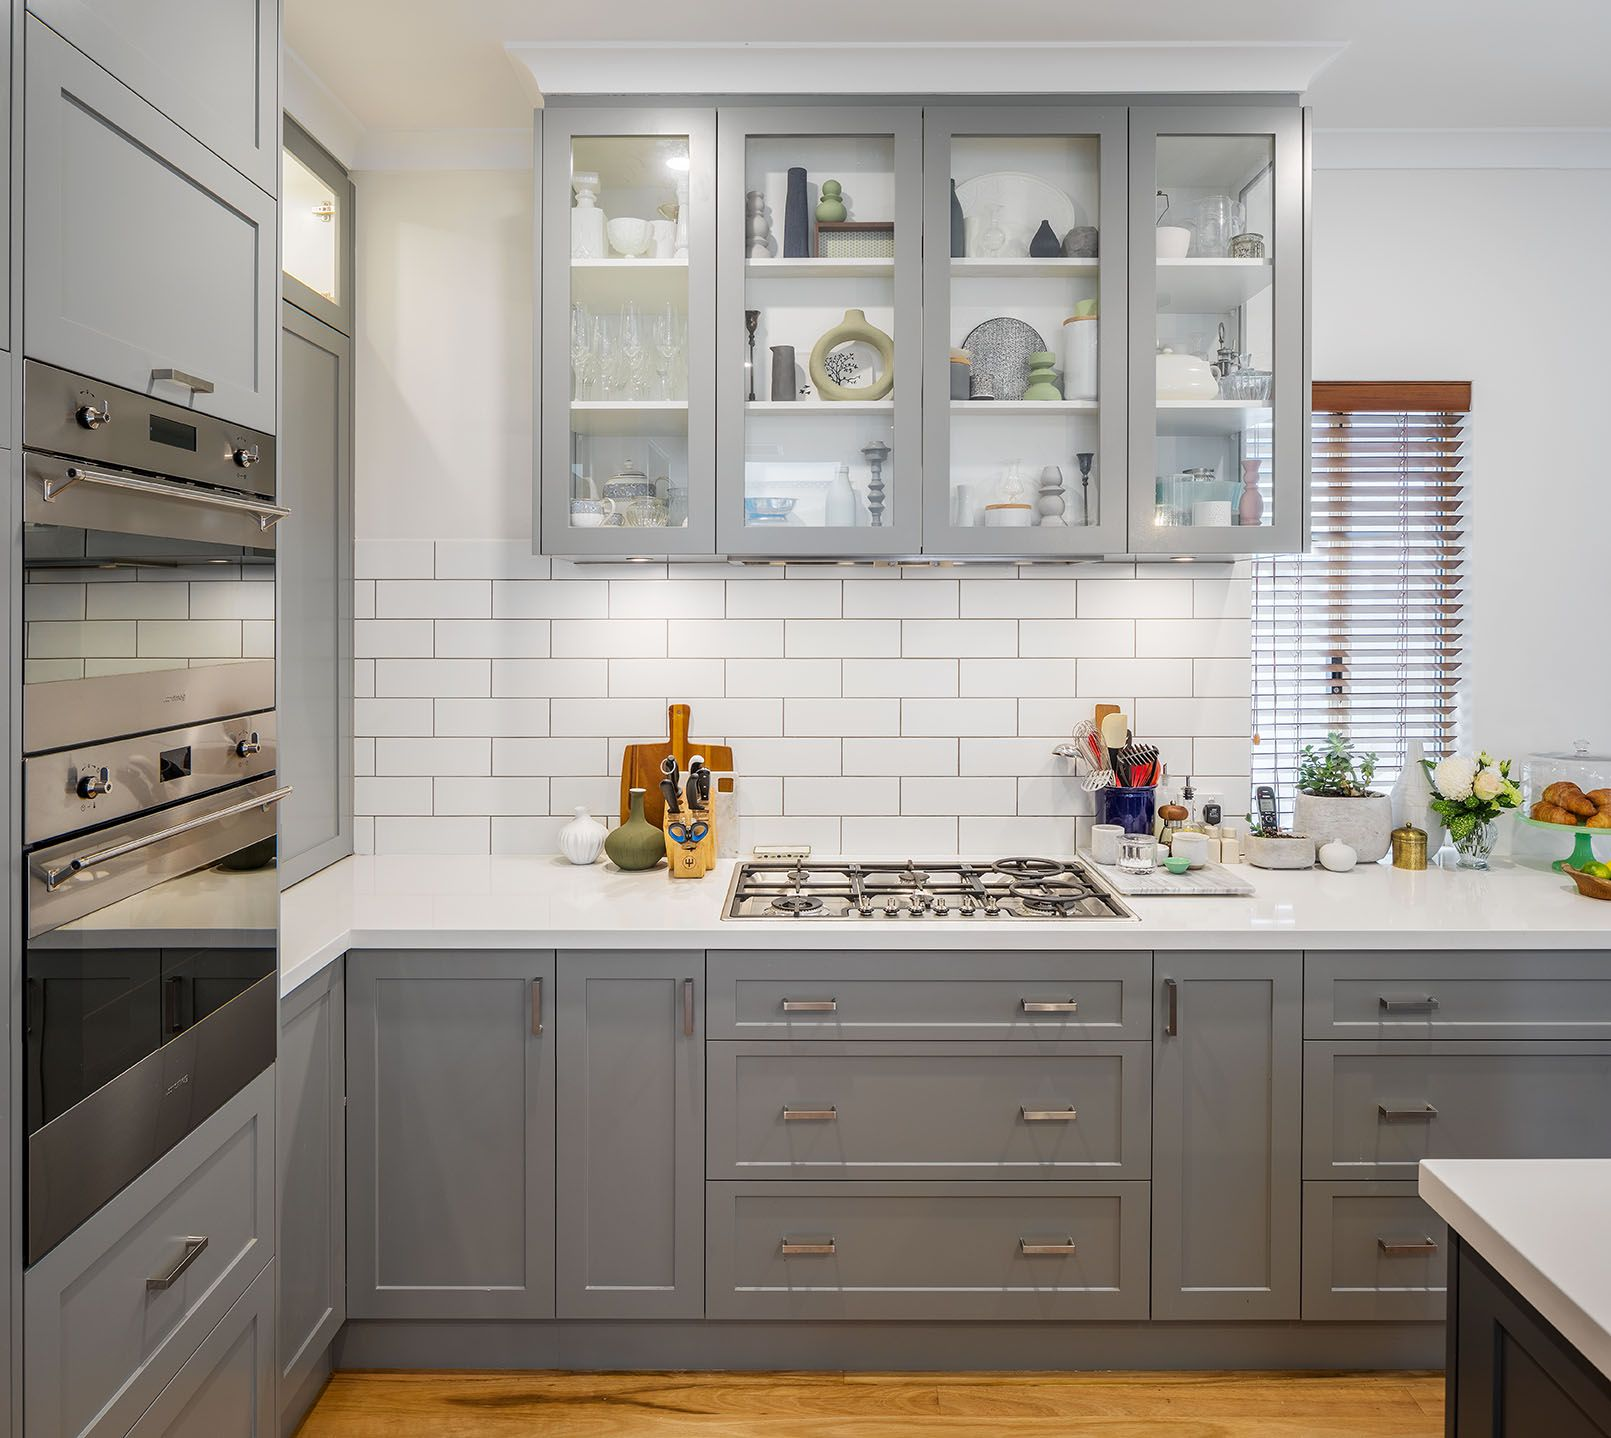 Castella Planar 12mm Handle in Brushed Nickel features again in this ...